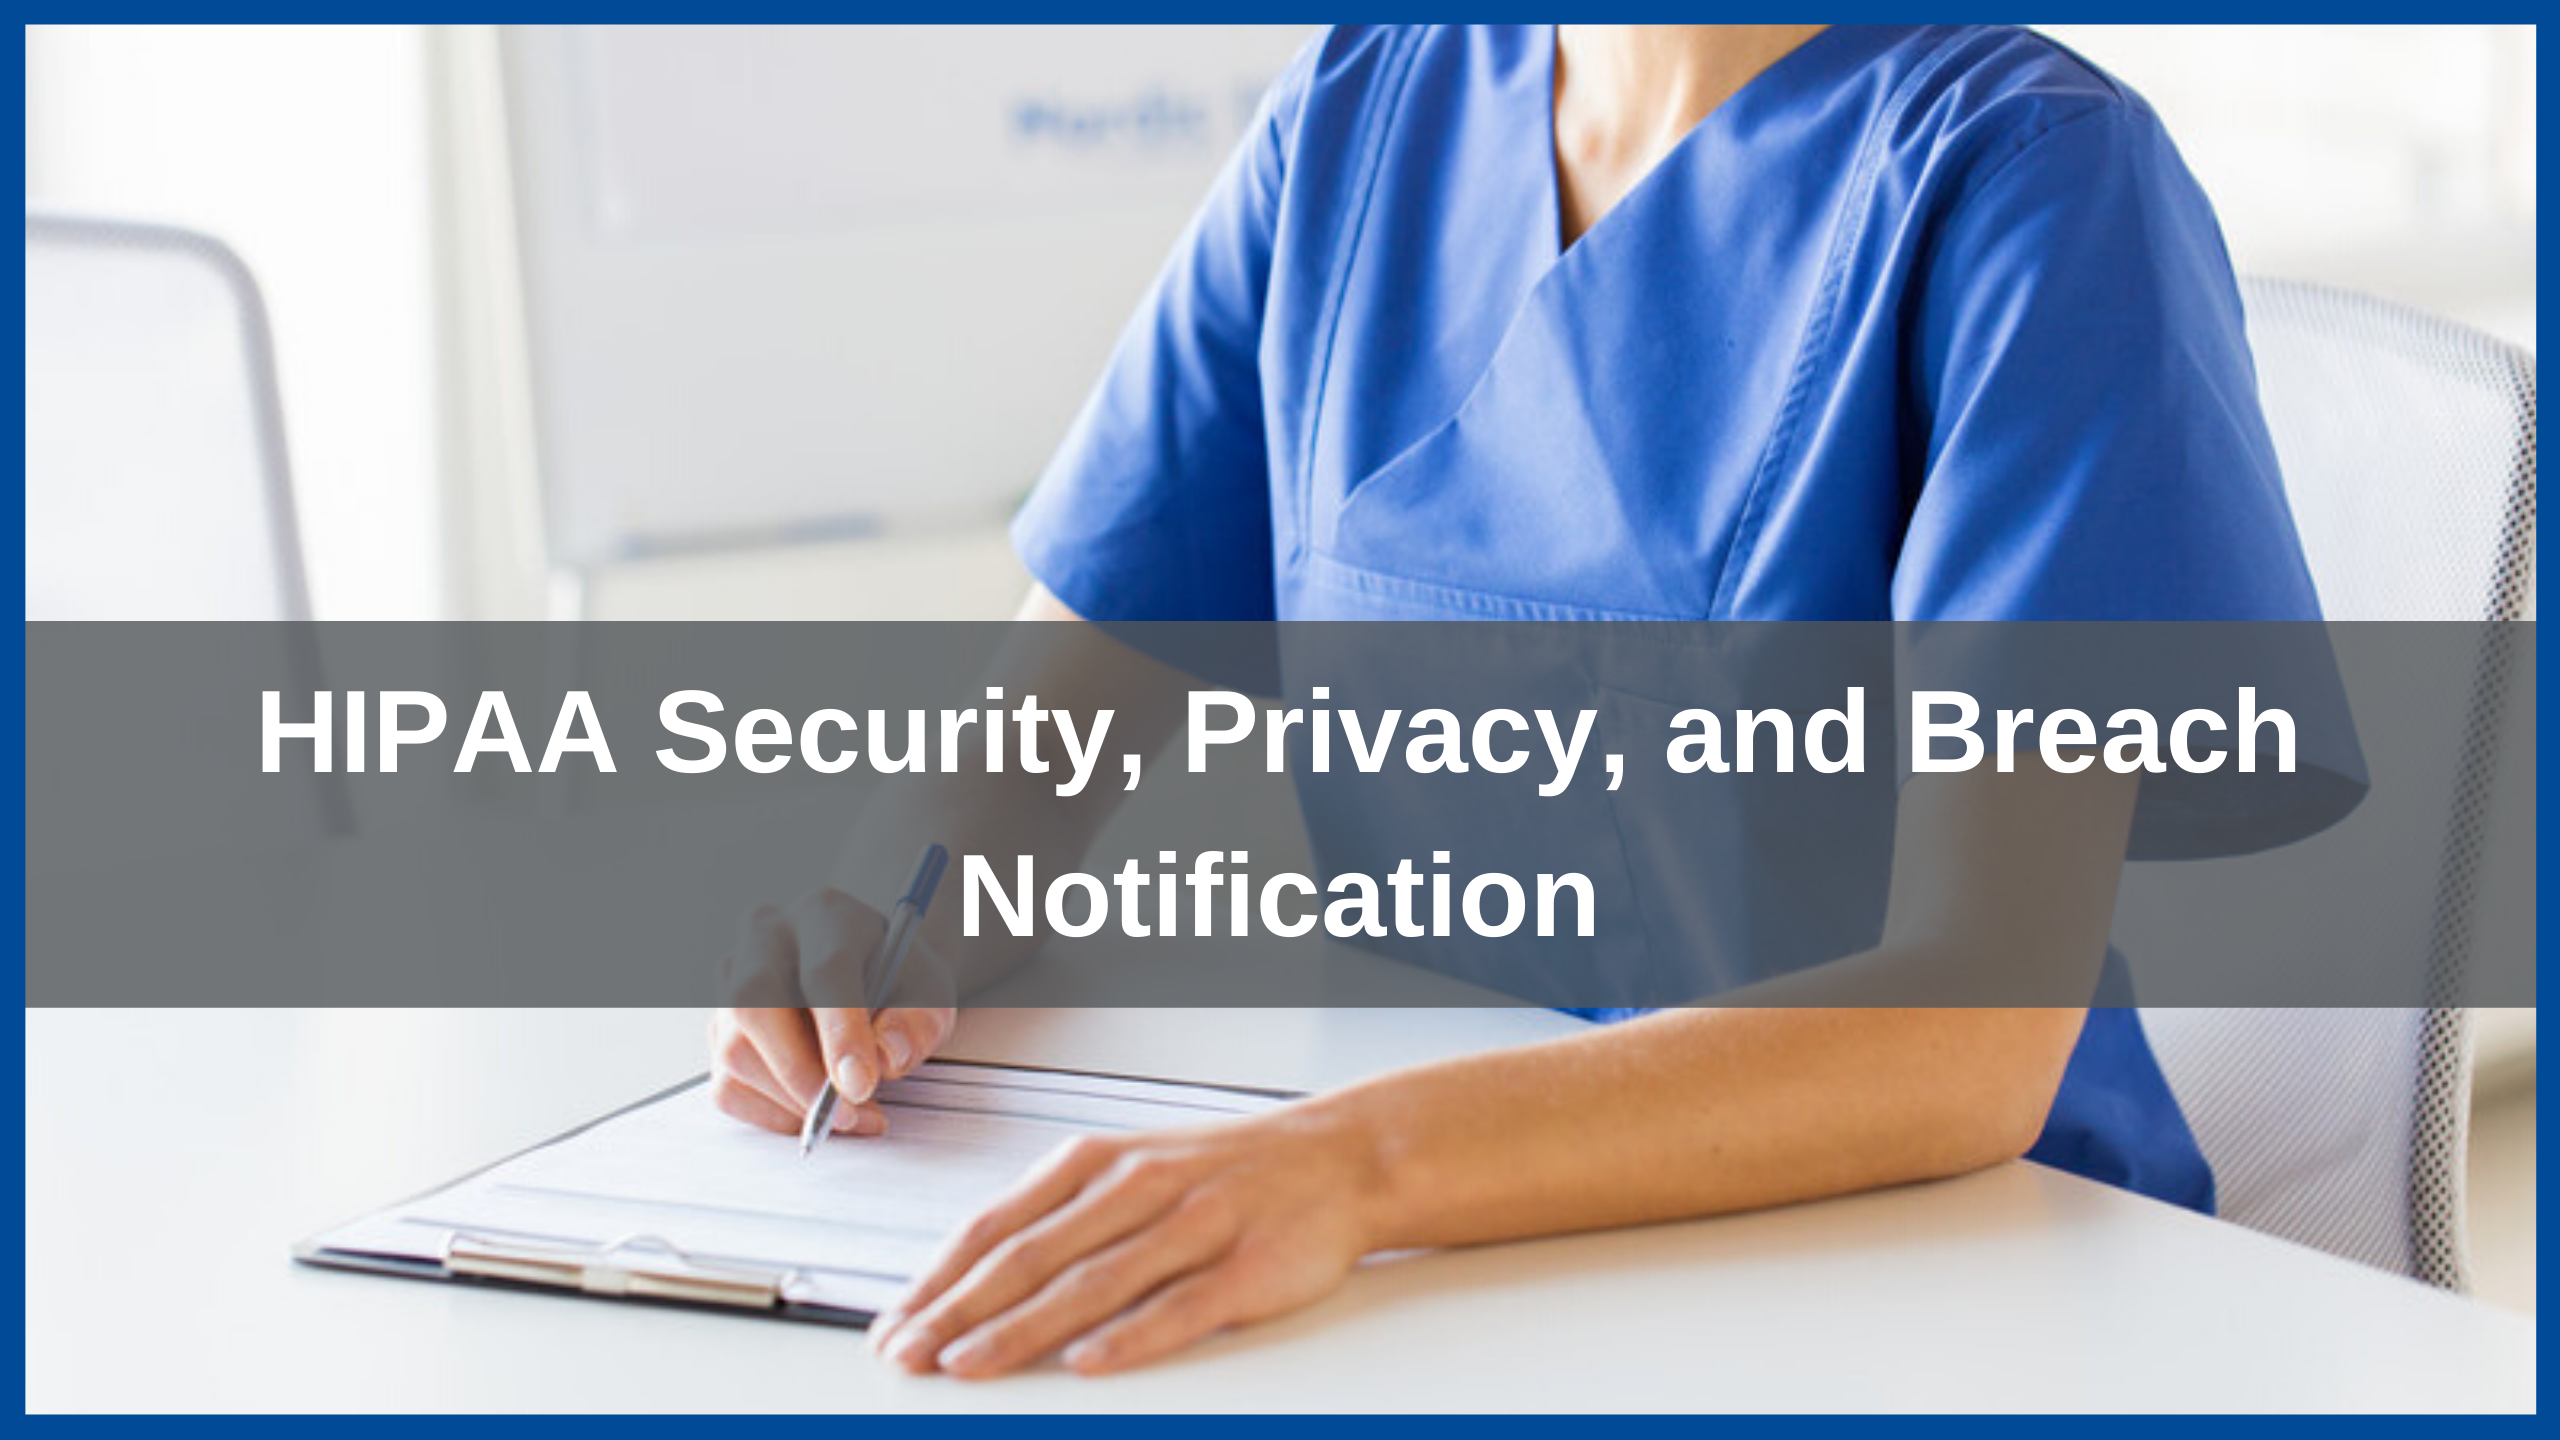 HIPAA Security, Privacy, and Breach Notification